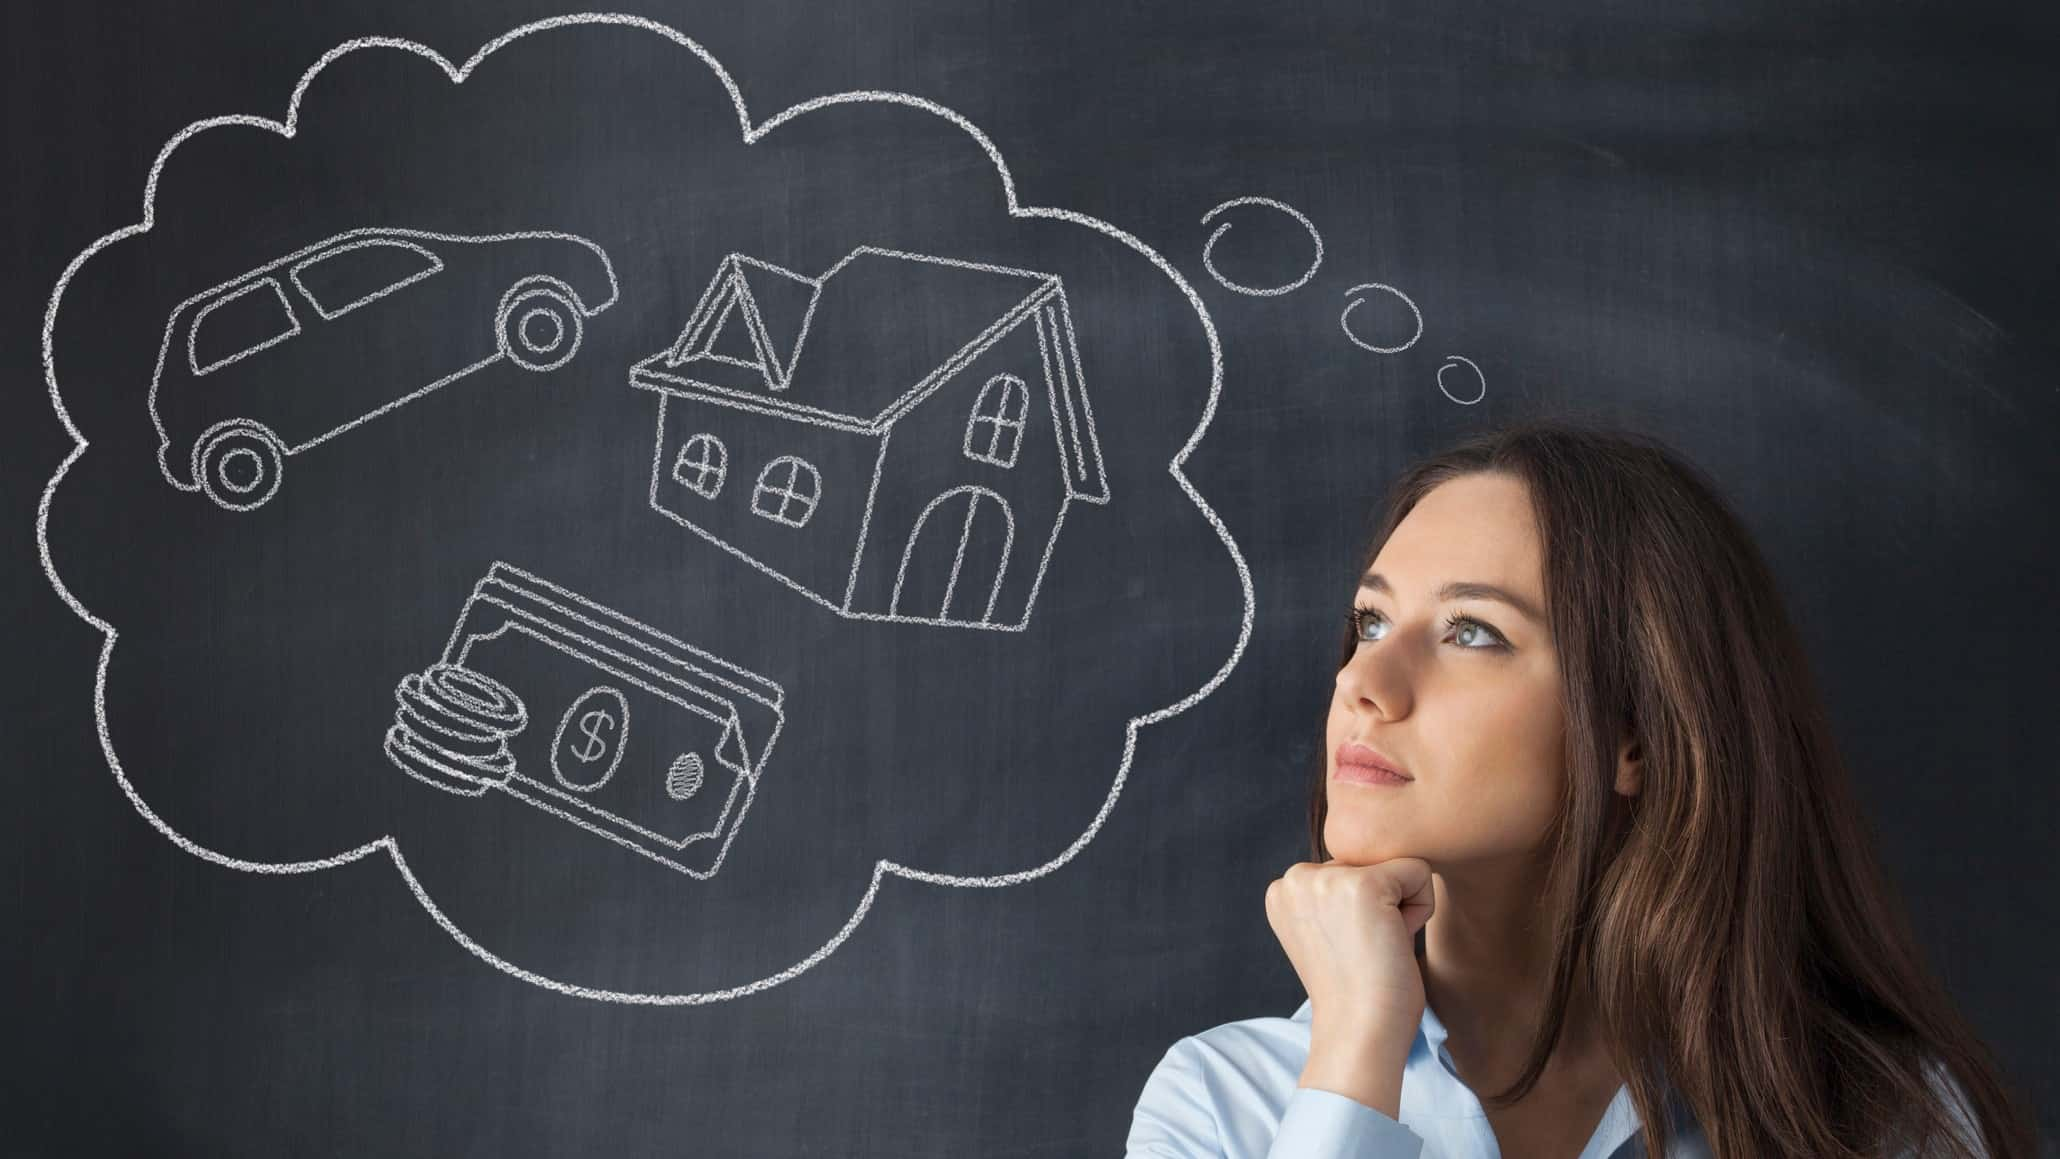 woman standing in front of blackboard with thought bubble containing car, house and money